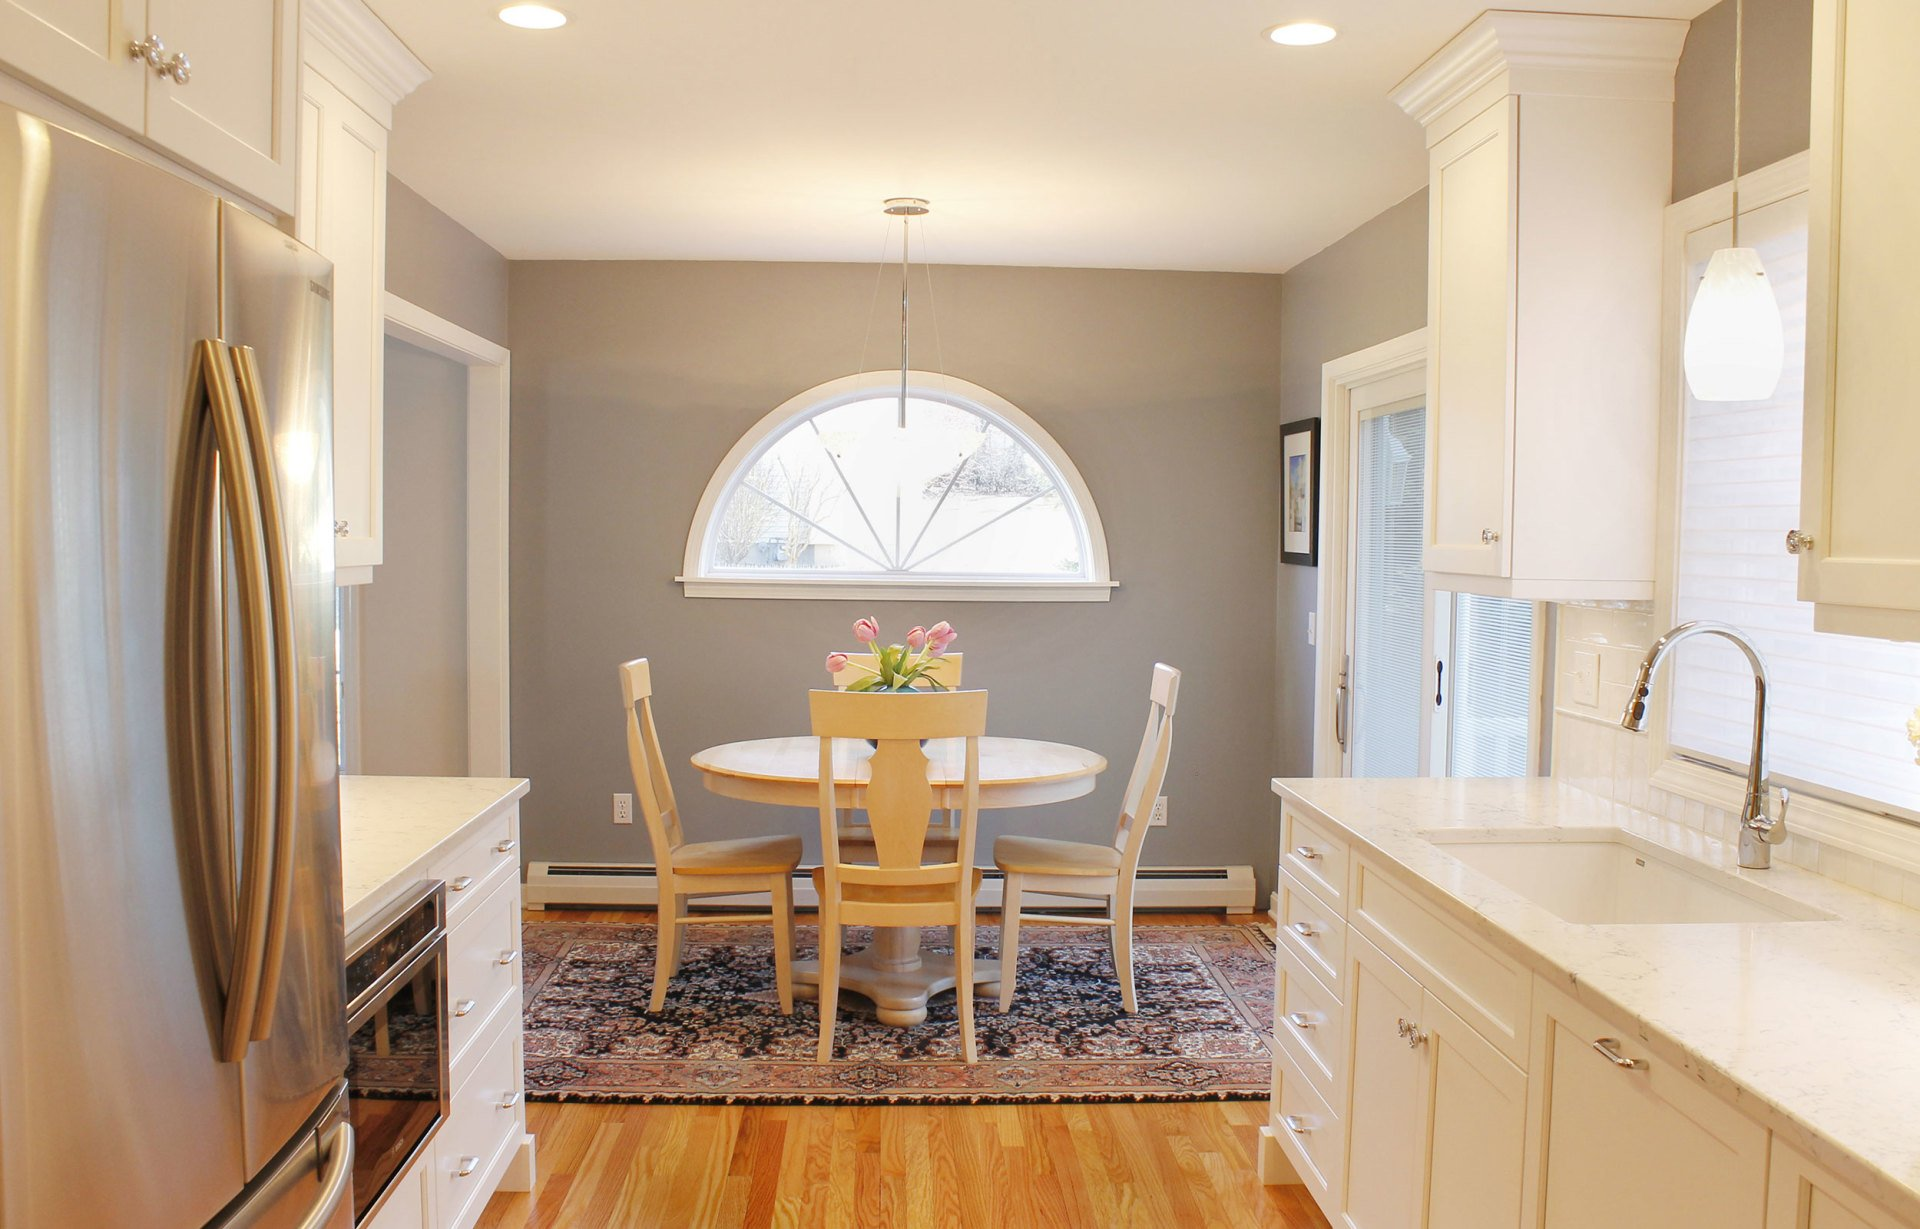 christino kitchens & remodeling | renovations glastonbury ct